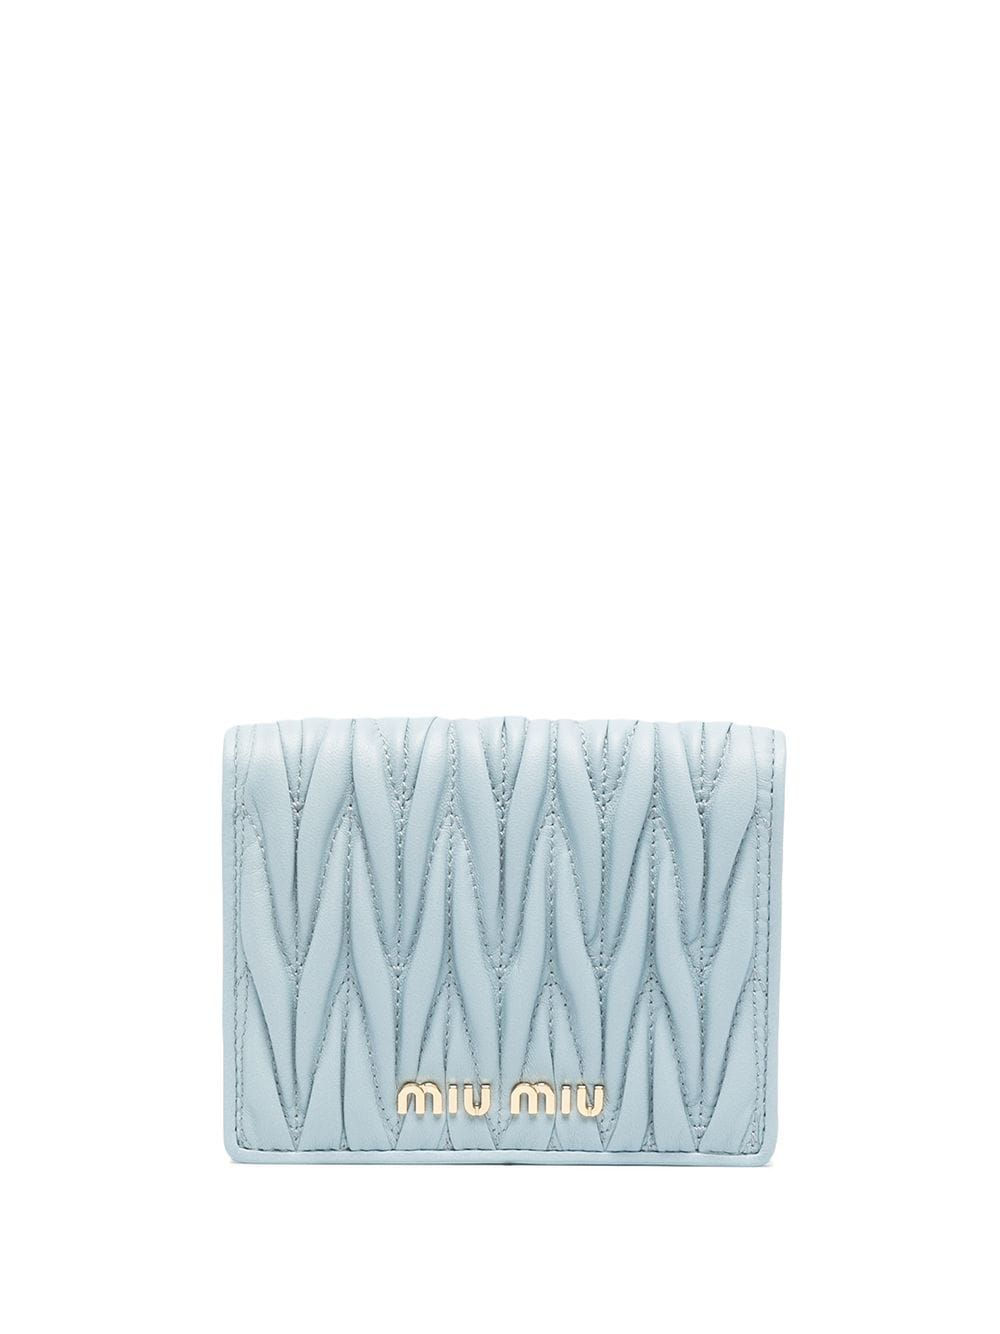 Miu Miu Bag accessorys MIU MIU WOMEN'S 5MV204N88F0012 LIGHT BLUE LEATHER WALLET